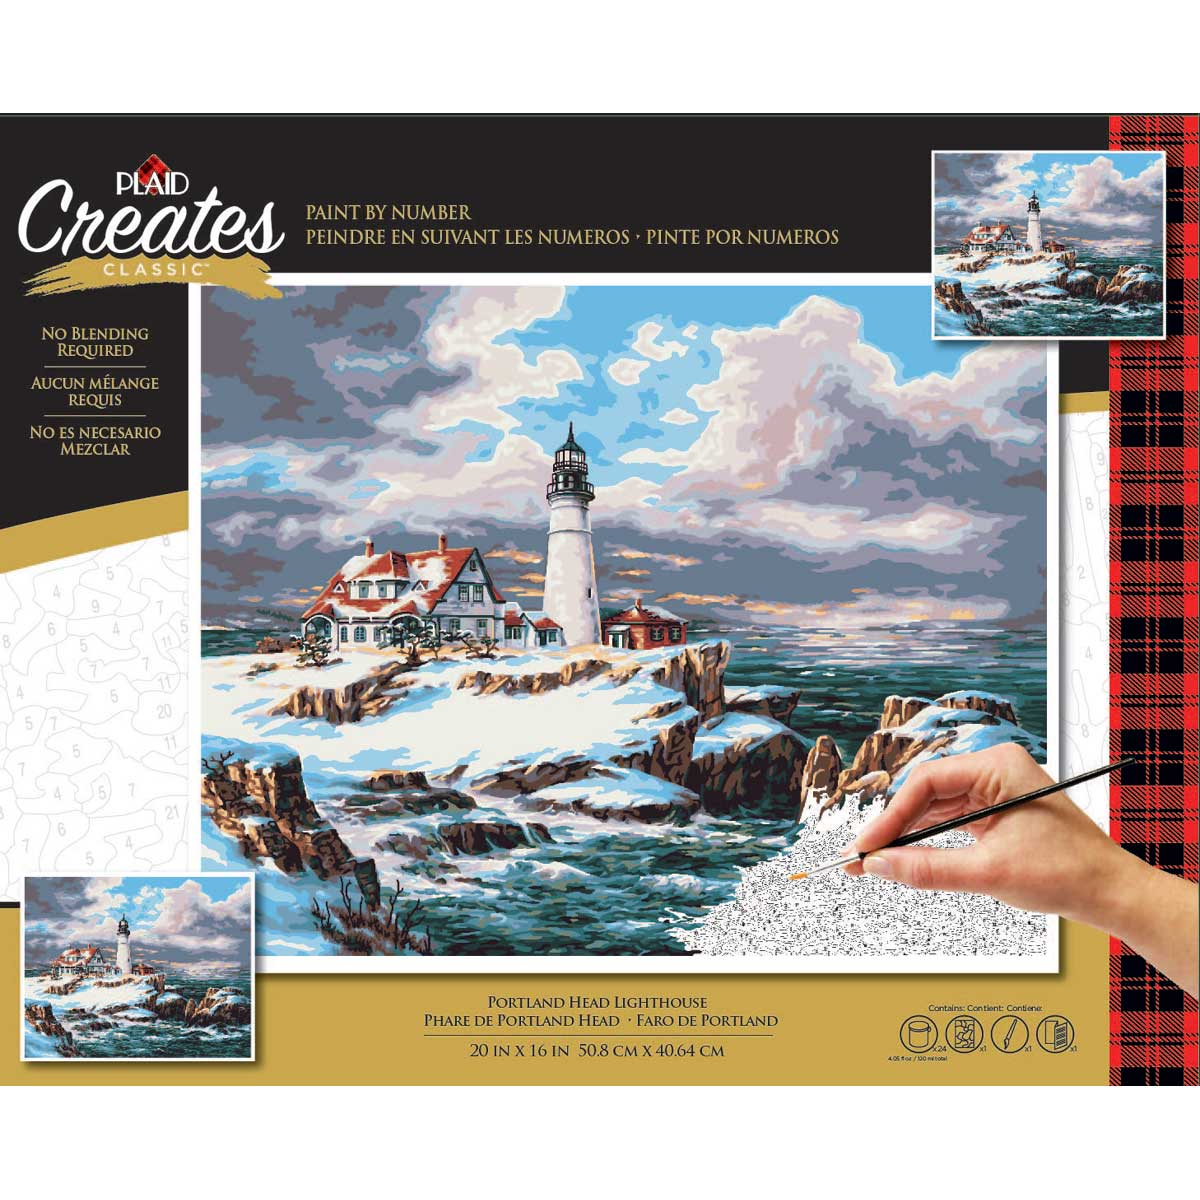 Plaid ® Paint by Number - Portland Head Lighthouse